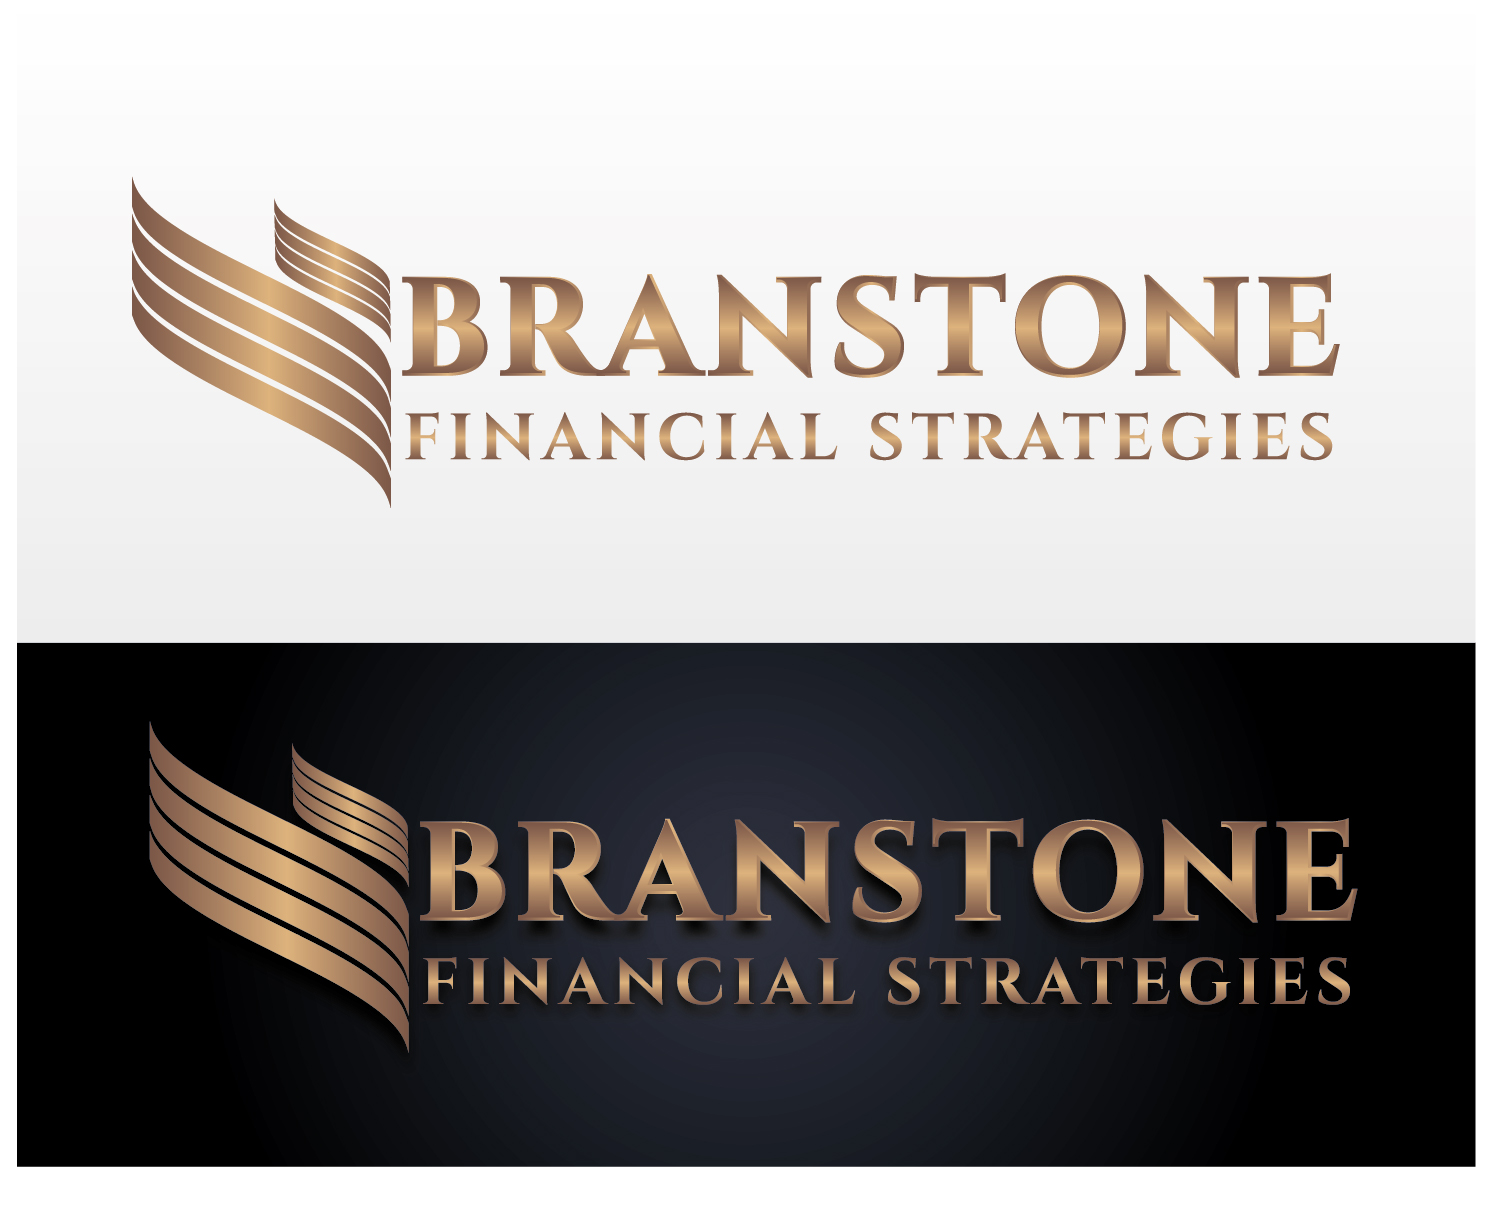 Logo Design by VENTSISLAV KOVACHEV - Entry No. 80 in the Logo Design Contest Inspiring Logo Design for Branstone Financial Strategies.